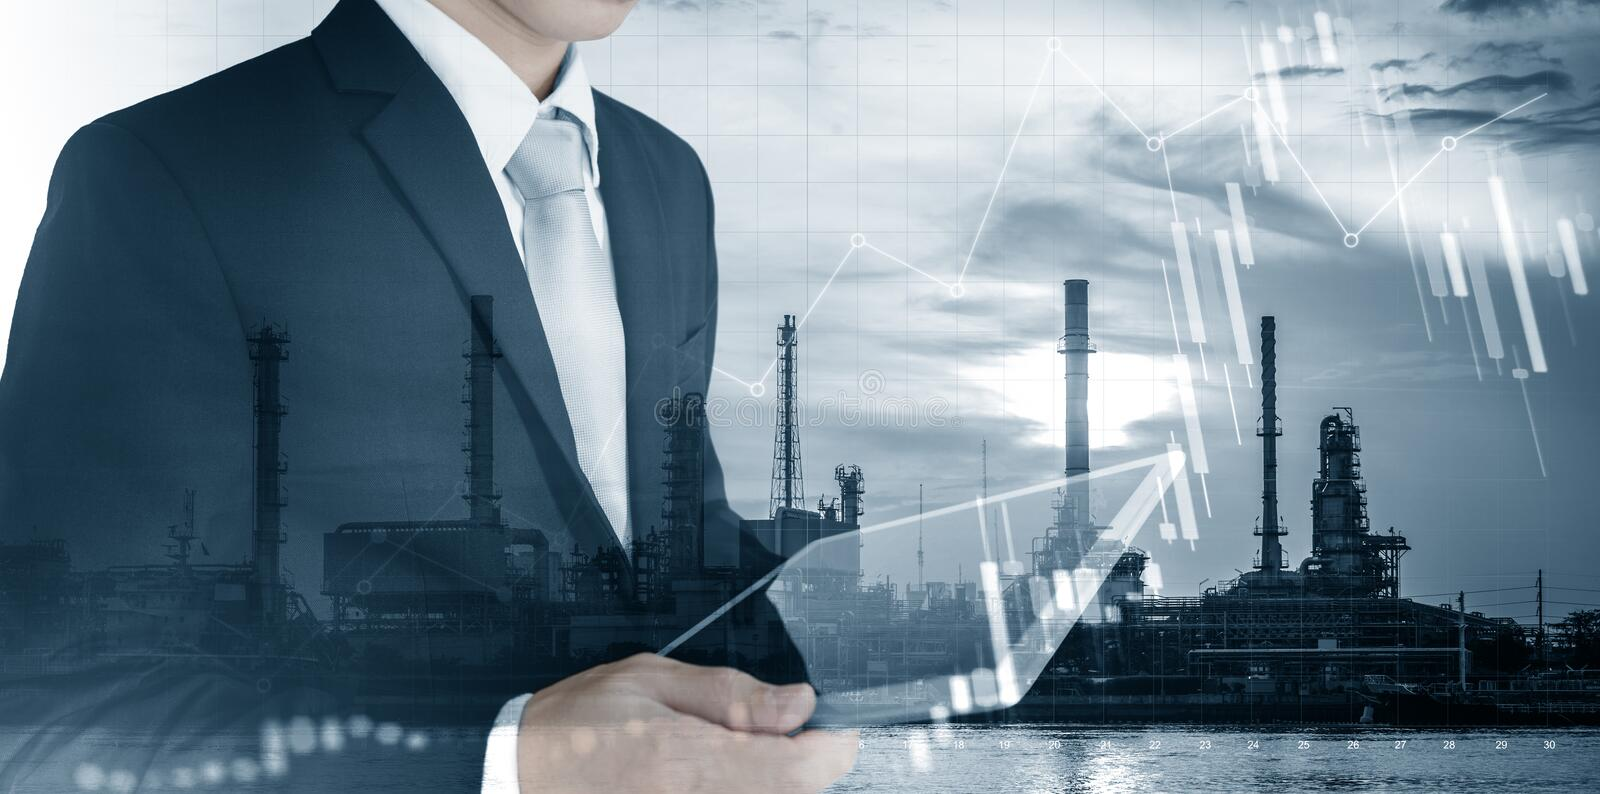 Investment in energy and fuel business. Double exposure Businessman working on digital tablet with power plant, oil refinery and r royalty free stock photo